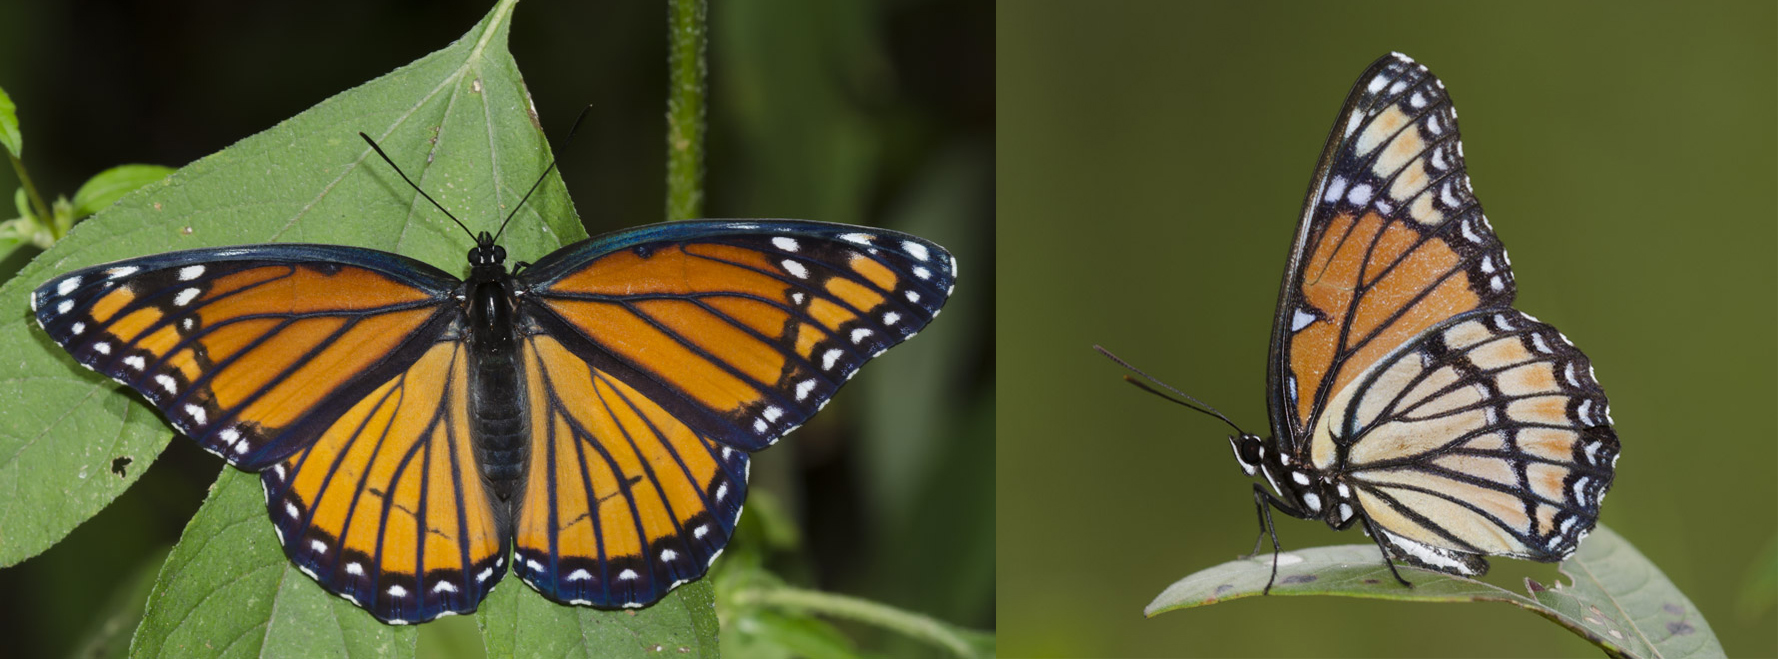 Both the dorsal and ventral view of a viceroy butterfly are shown. They closely resemble the orange and black monarch, but have one stripe across the bottom of their wings that monarchs do not.